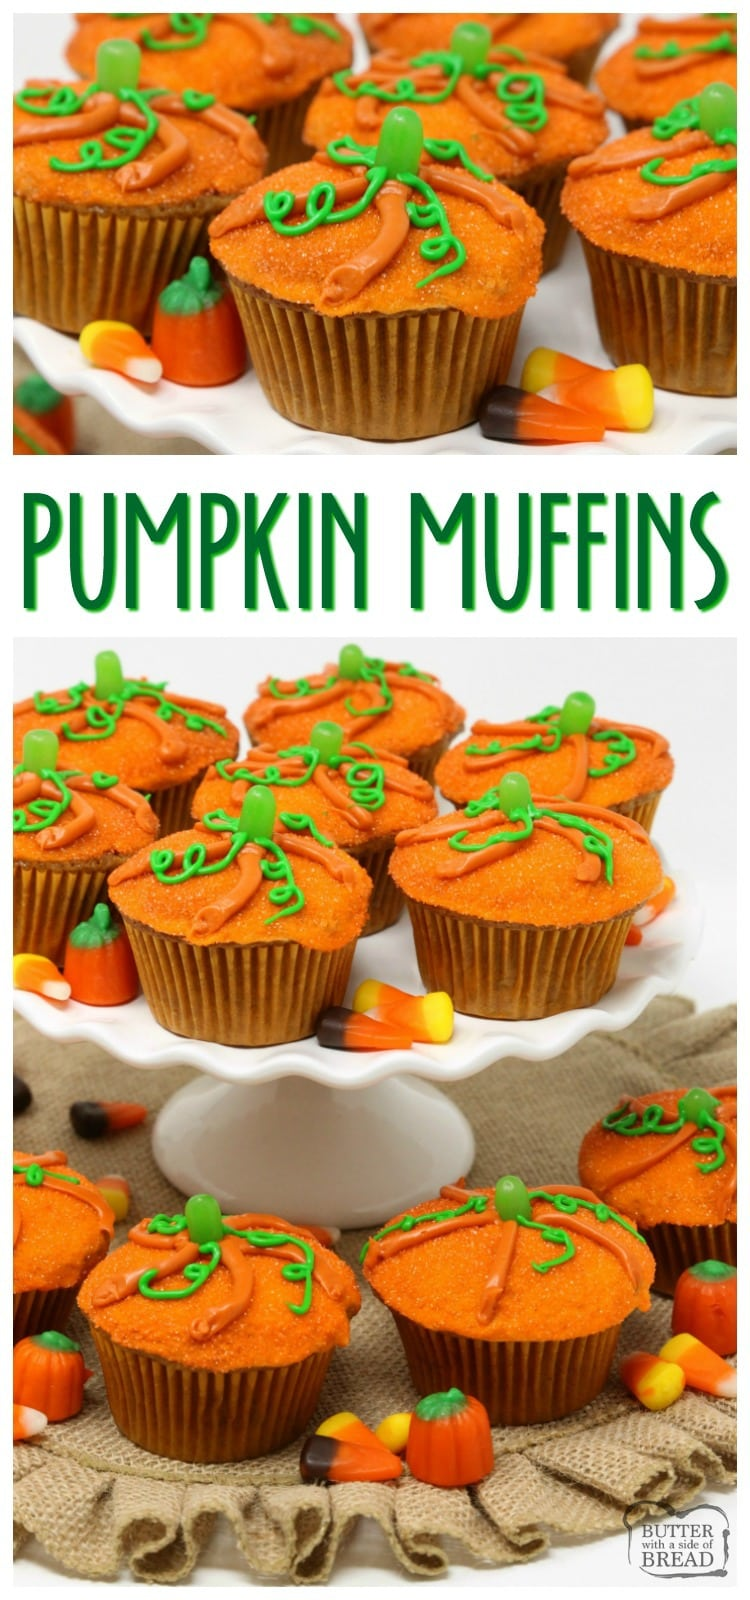 Pumpkin Muffins baked then topped with a simple glaze and orange sprinkles made to look like a cute pumpkin! Great pumpkin spice flavor & festive too!  Easy #pumpkin #muffin recipe from Butter With A Side of Bread